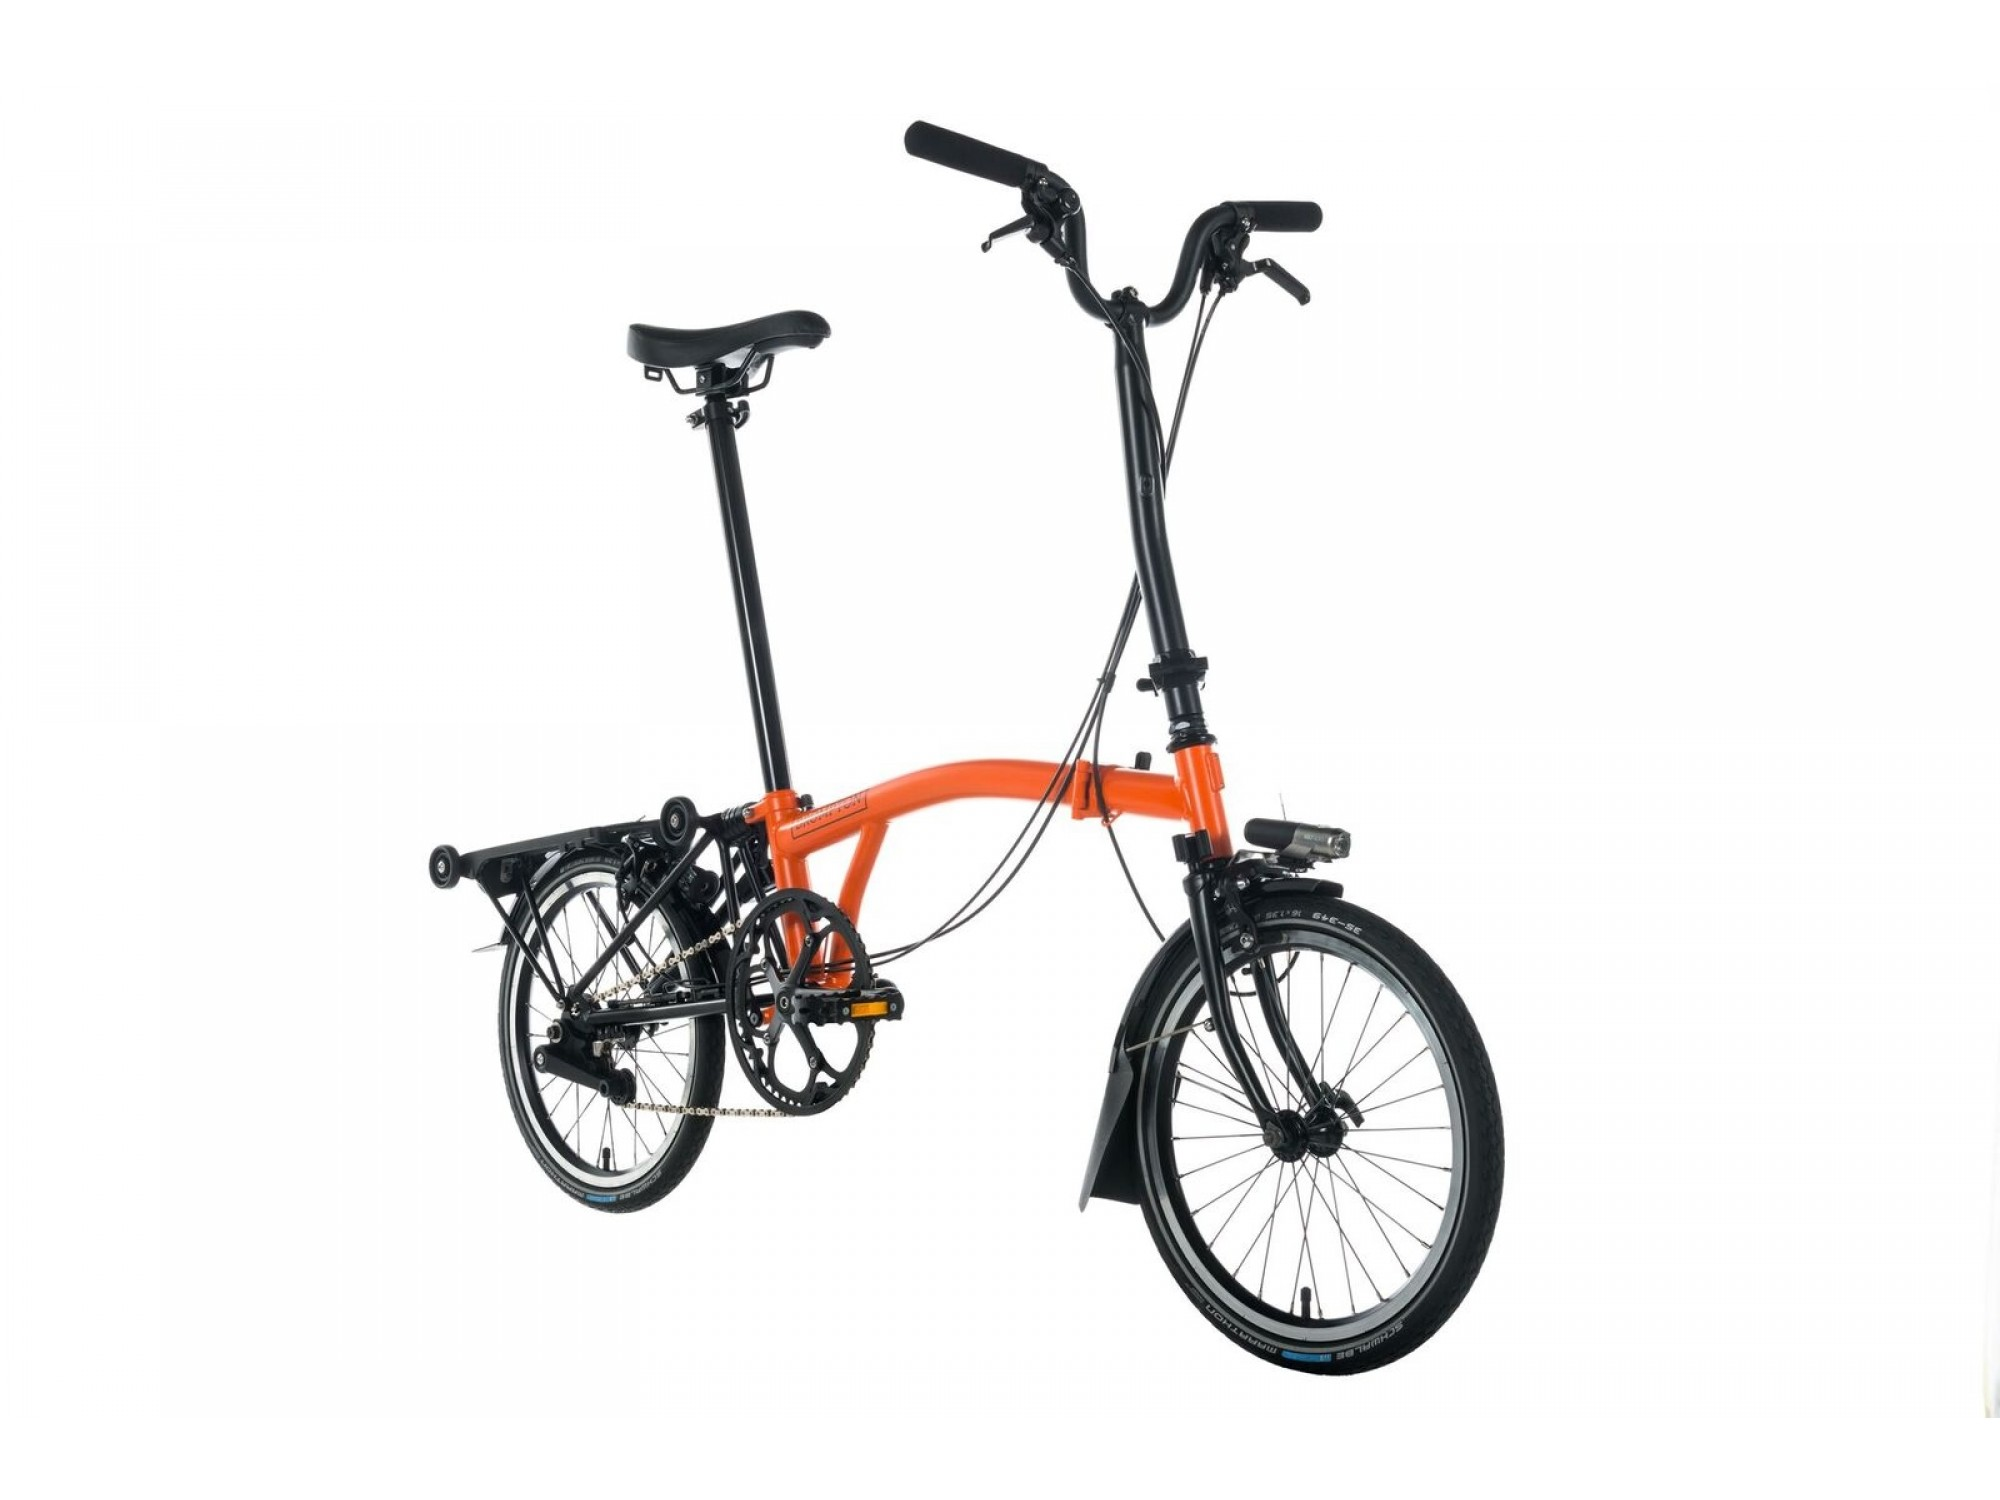 Brompton Bikes Brompton M6l Black Edition Folding Bike Edinburgh Bike Co Op